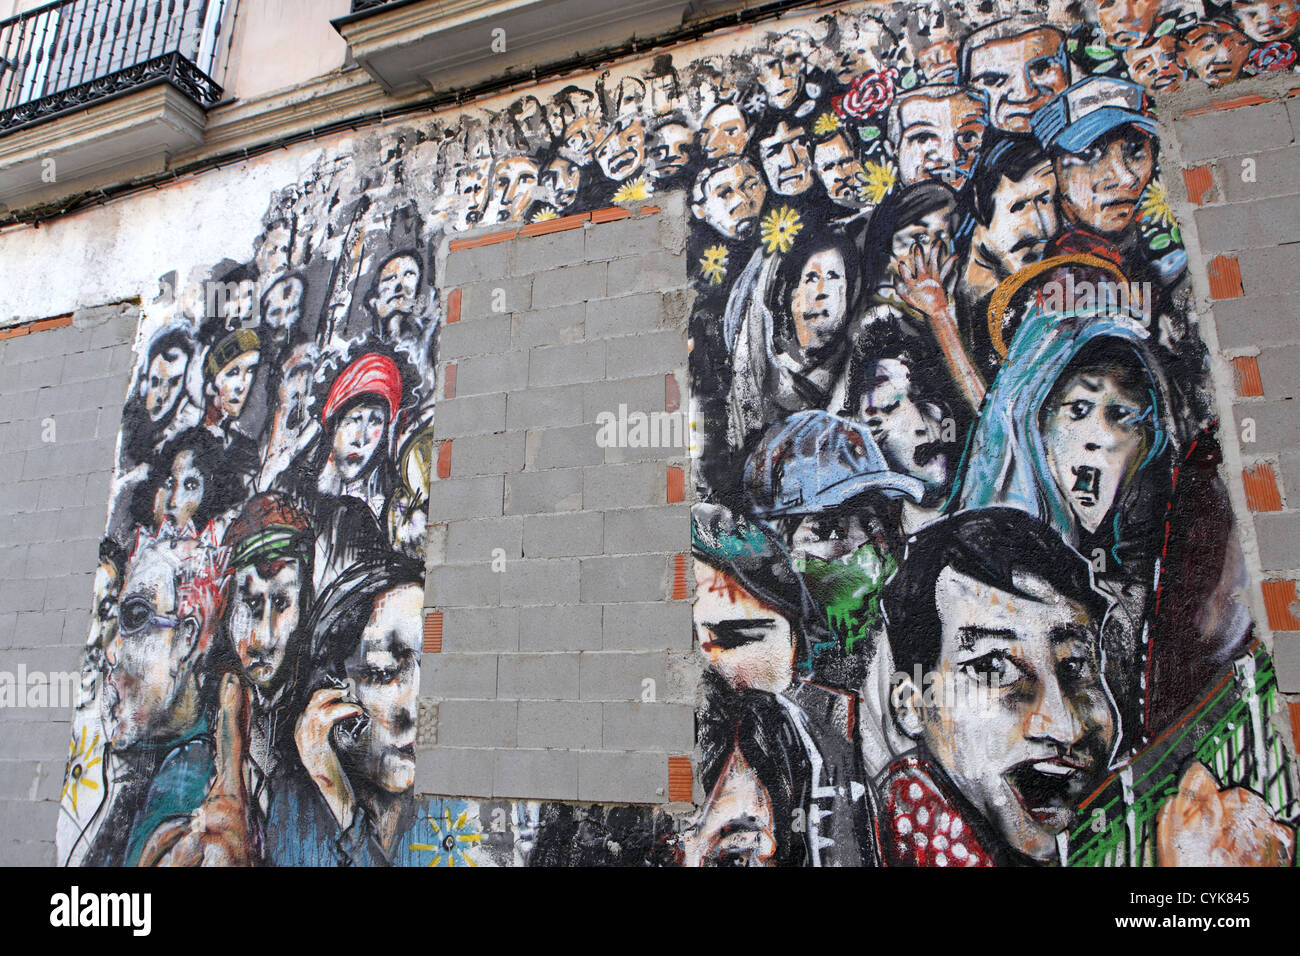 mural showing crowd of faces wall with bricked in